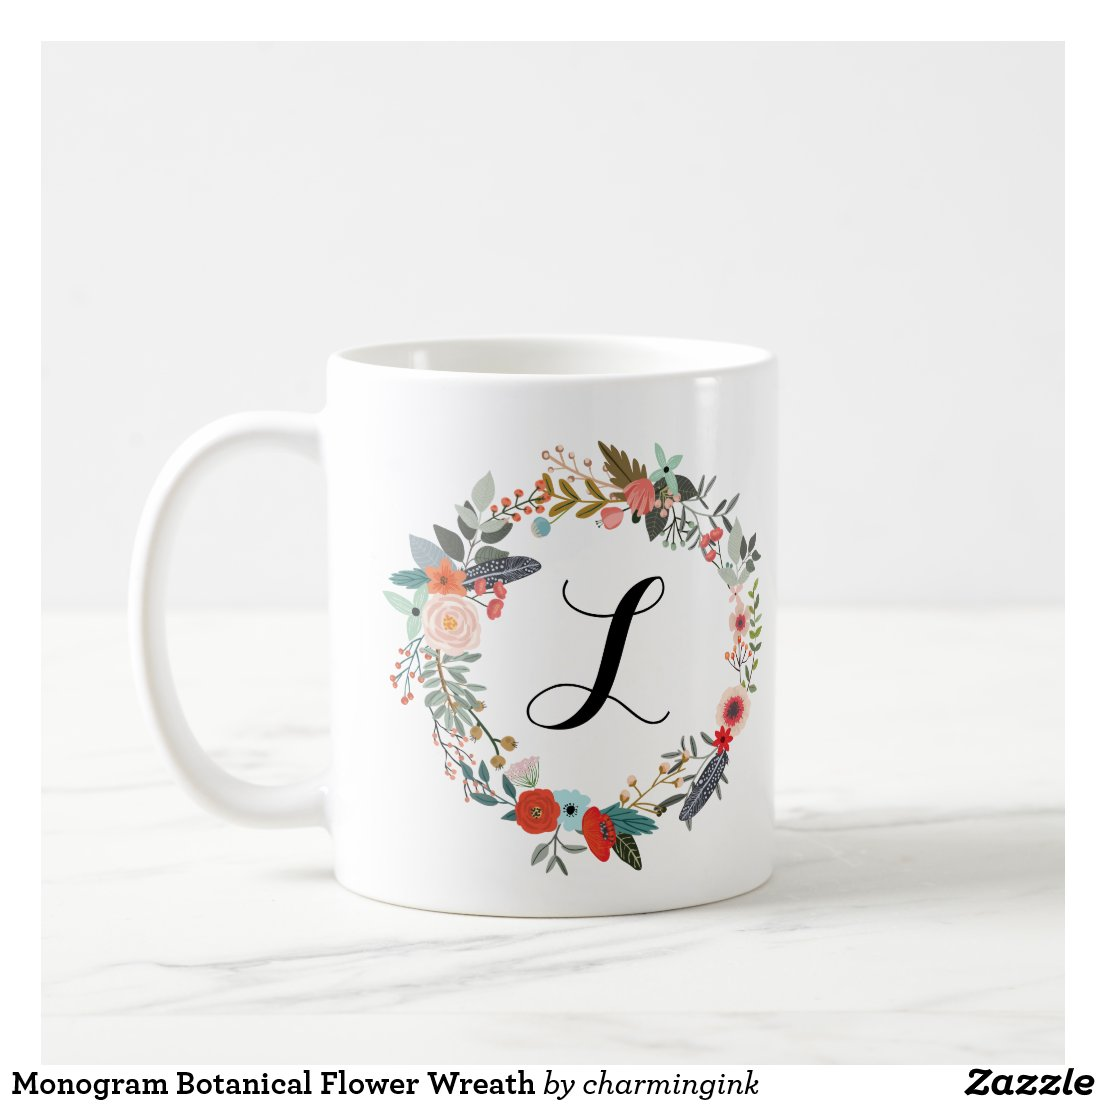 Monogram Botanical Flower Wreath Mug